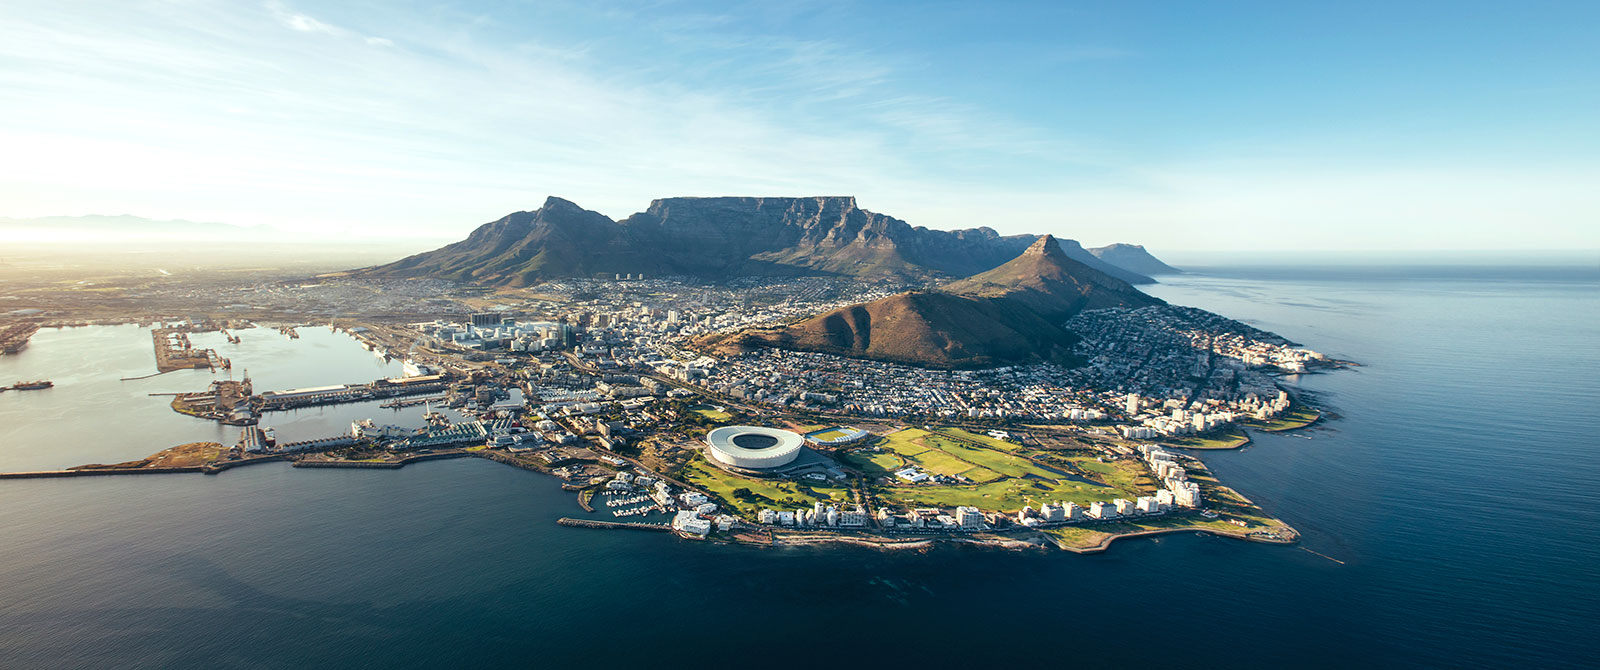 Aerial View of Cape Town - South Africa Garden Route Package